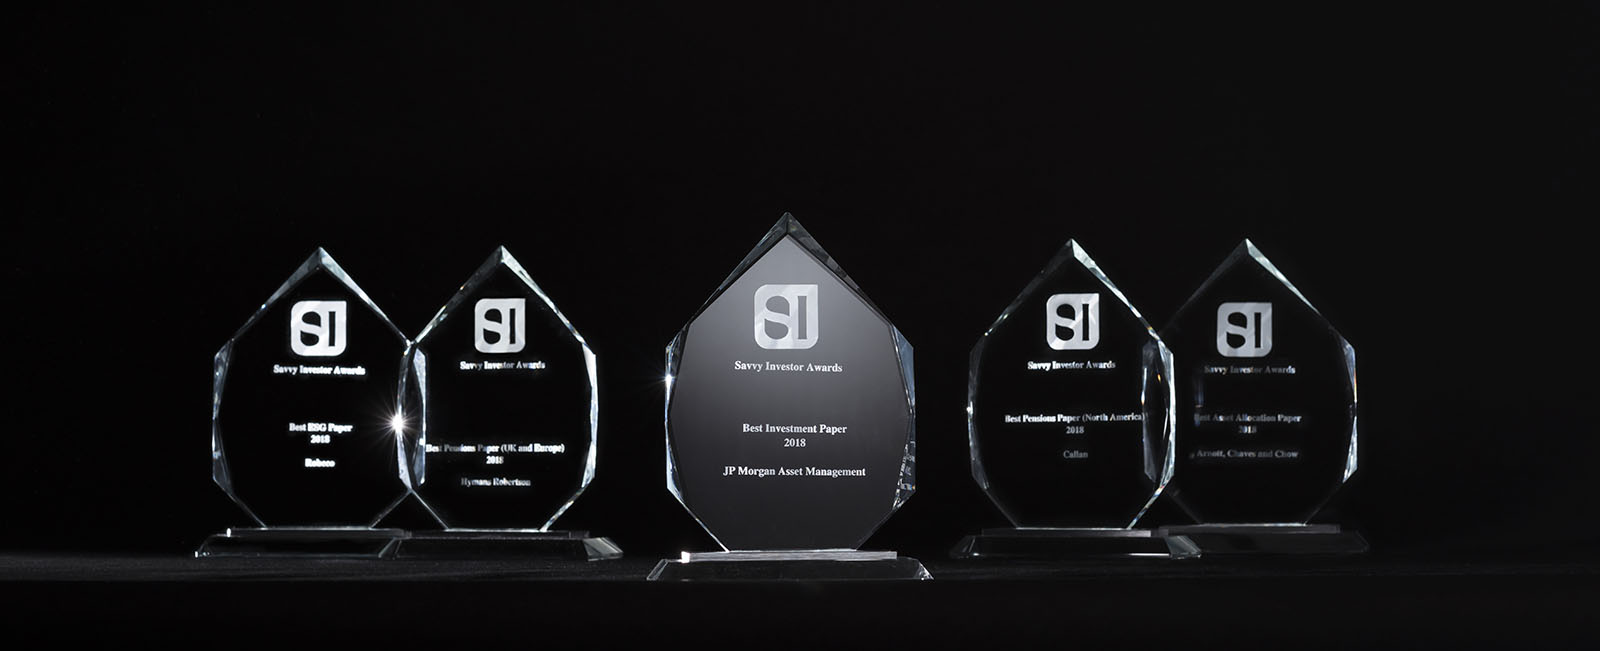 Savvy Investor Awards 2018 Trophies